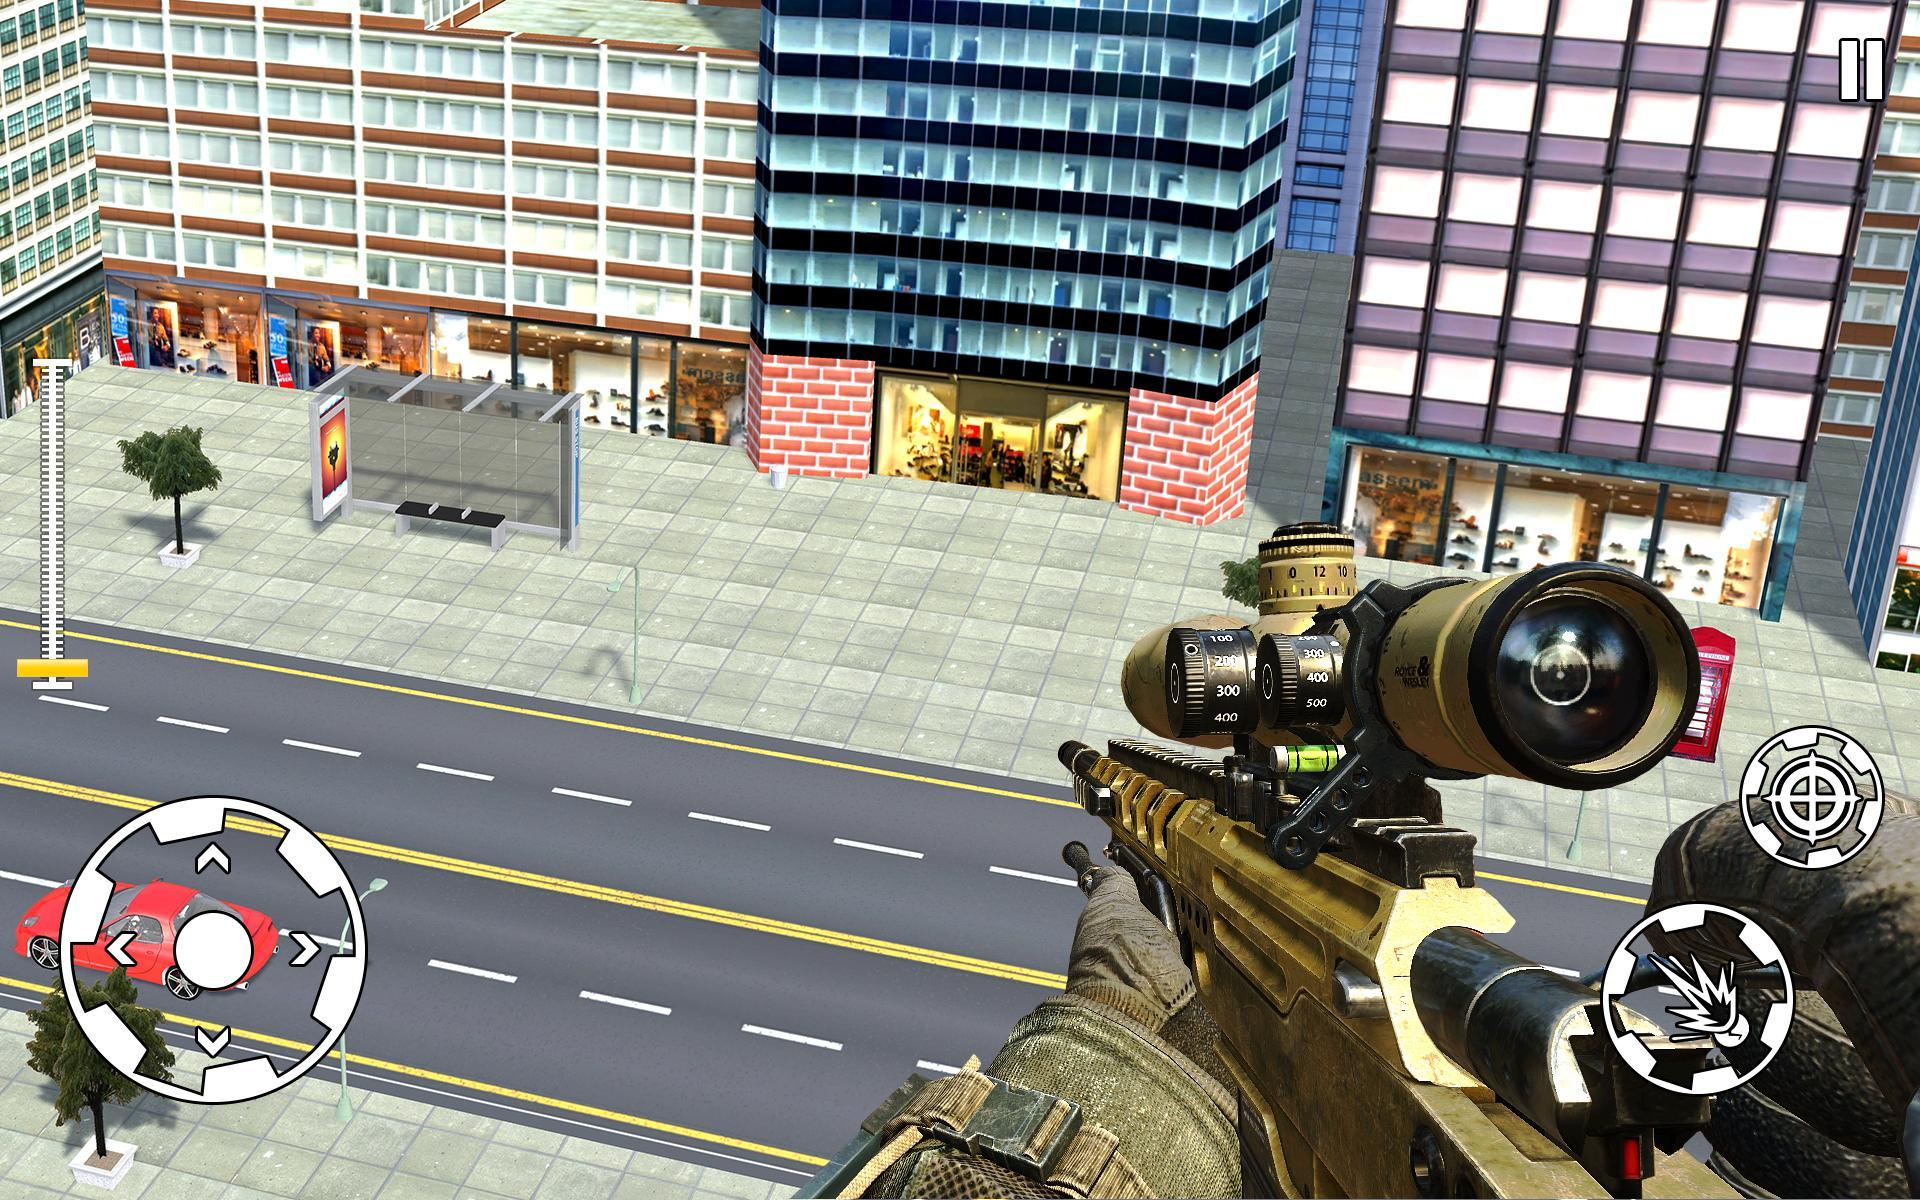 City Highway Sniper Shooter 3D: Shooting Games for Android